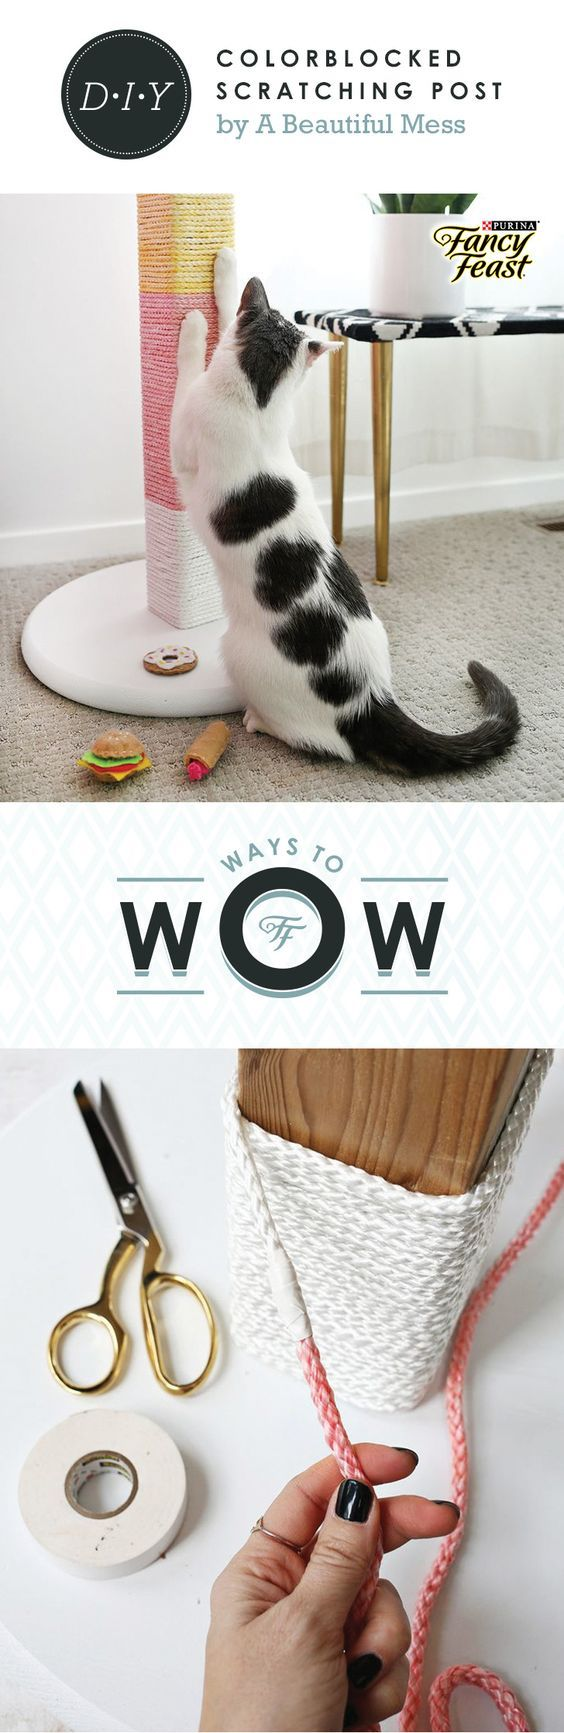 Hammock chair diy a beautiful mess - Build Your Own Curved Fire Pit Bench A Beautiful Mess Tags Com Diy Hammock Chair